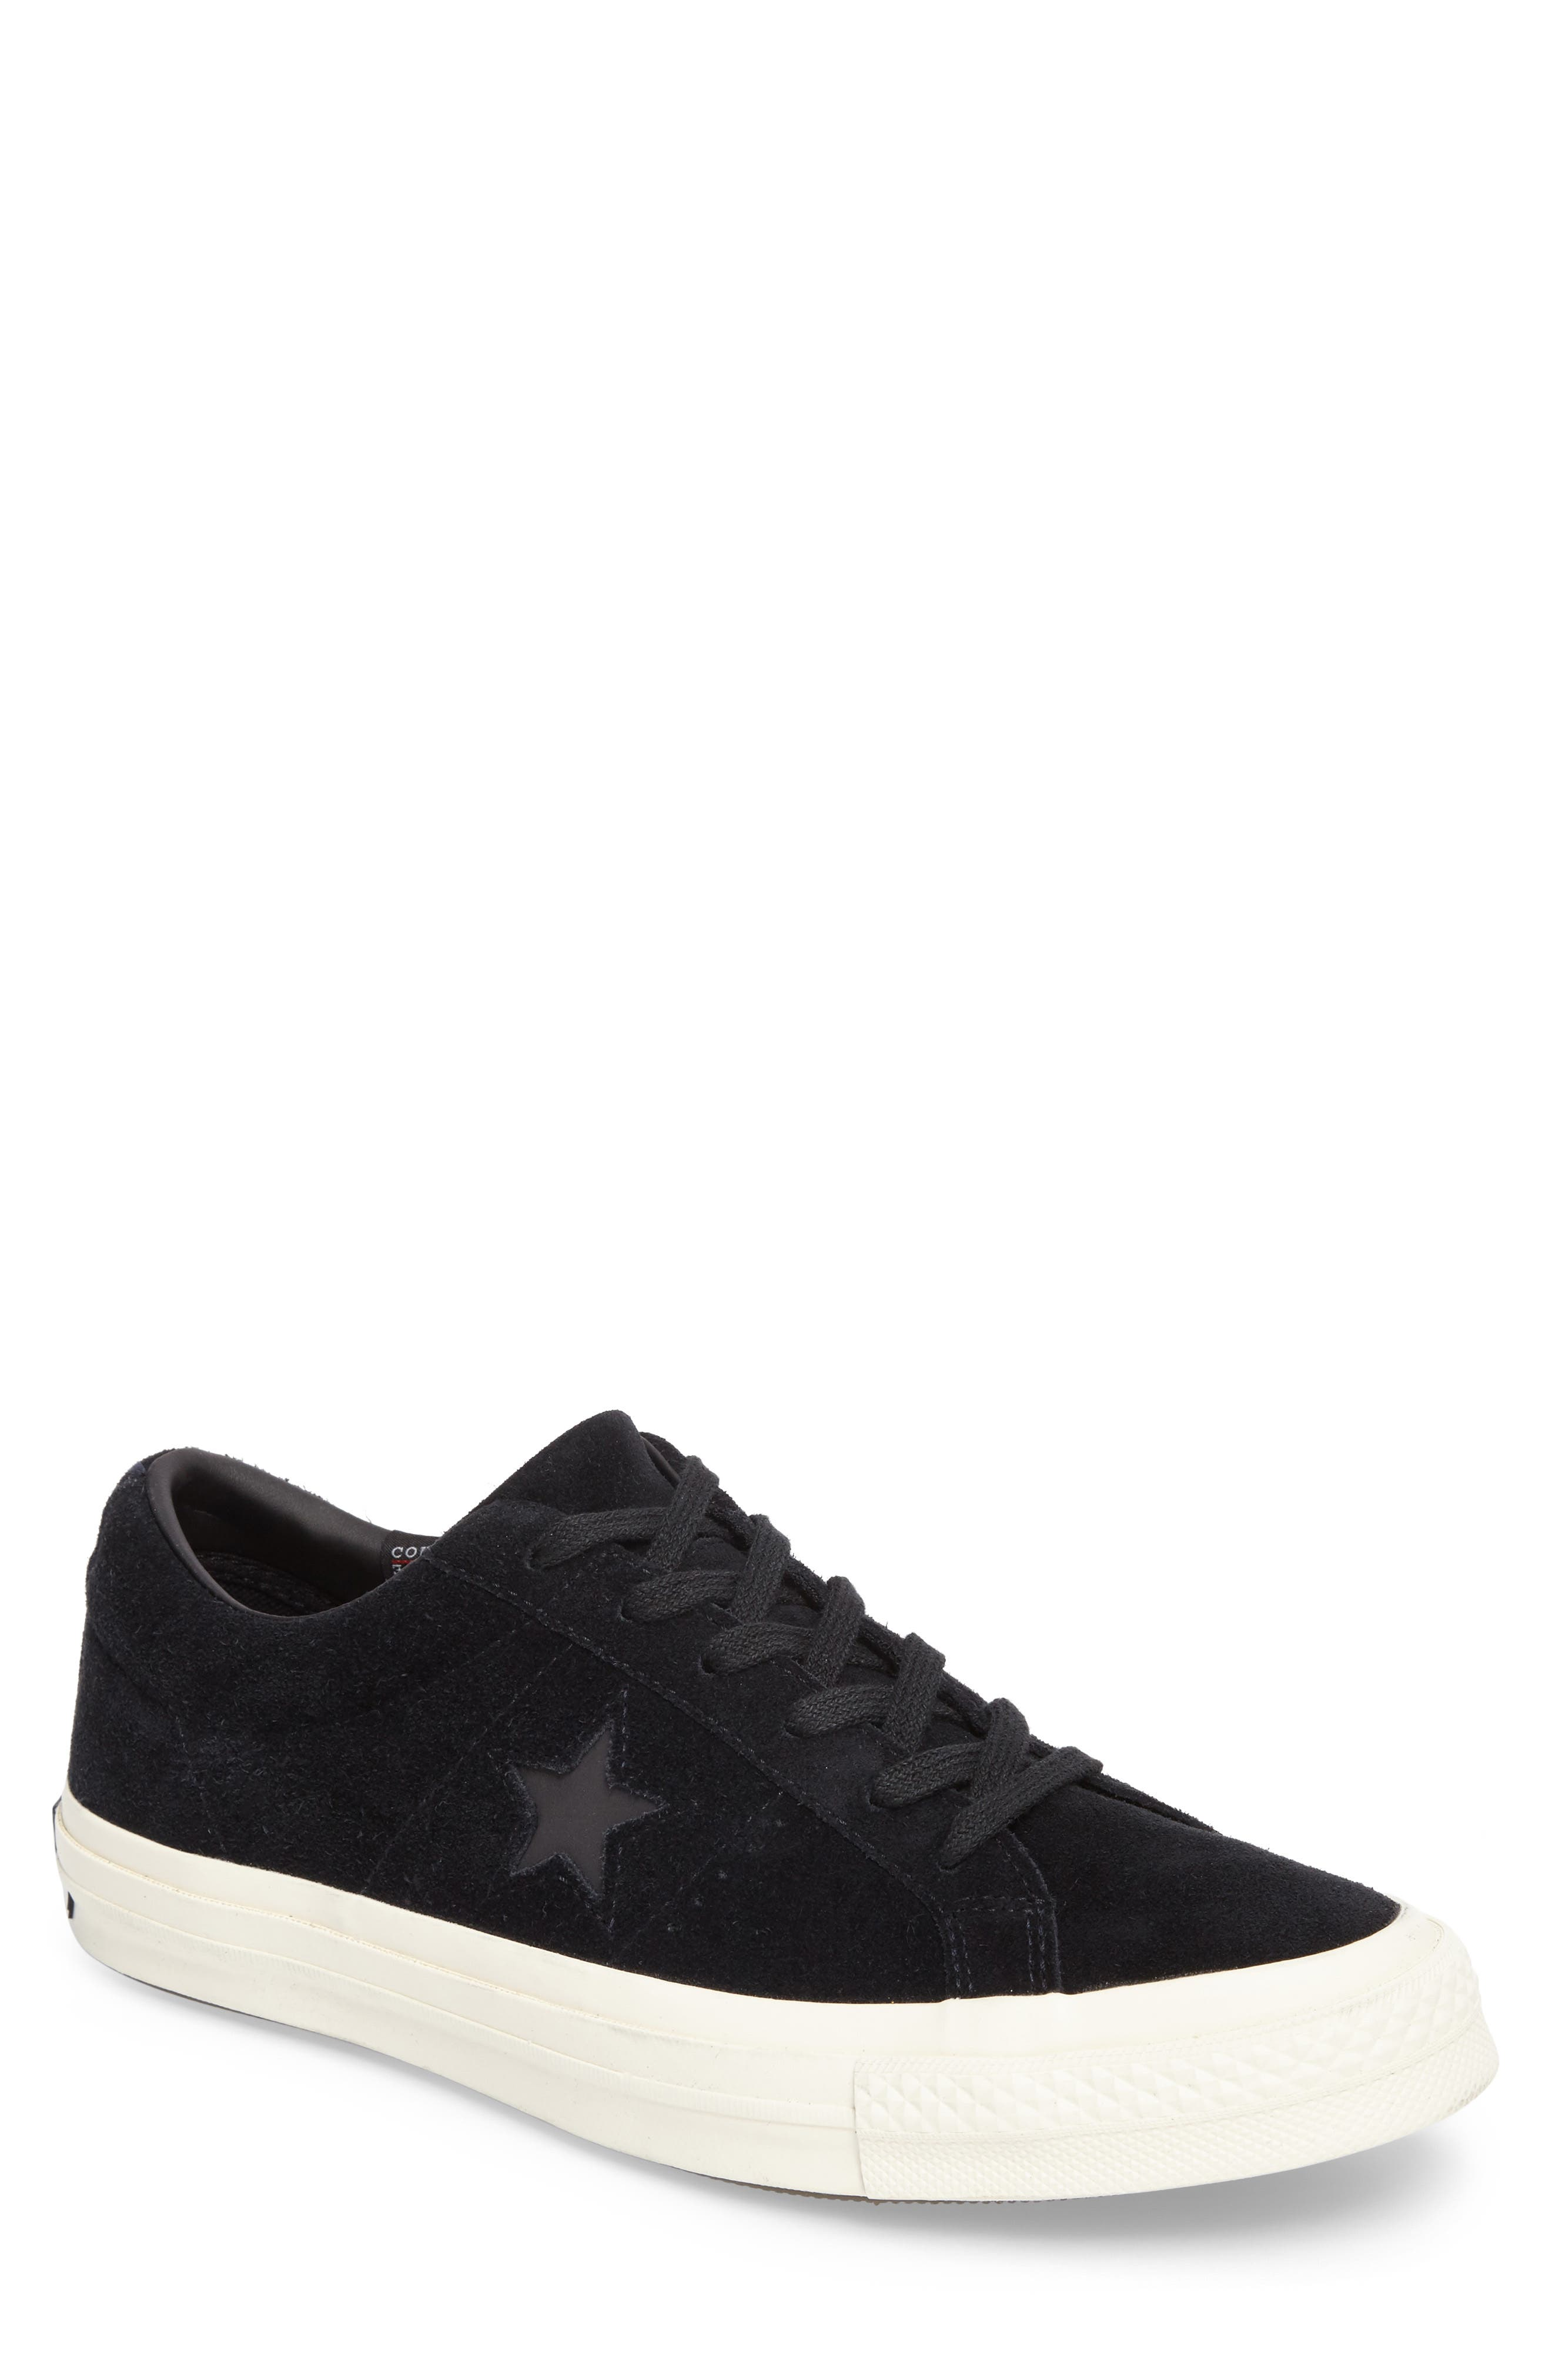 Main Image - Converse One Star Sneaker (Men)